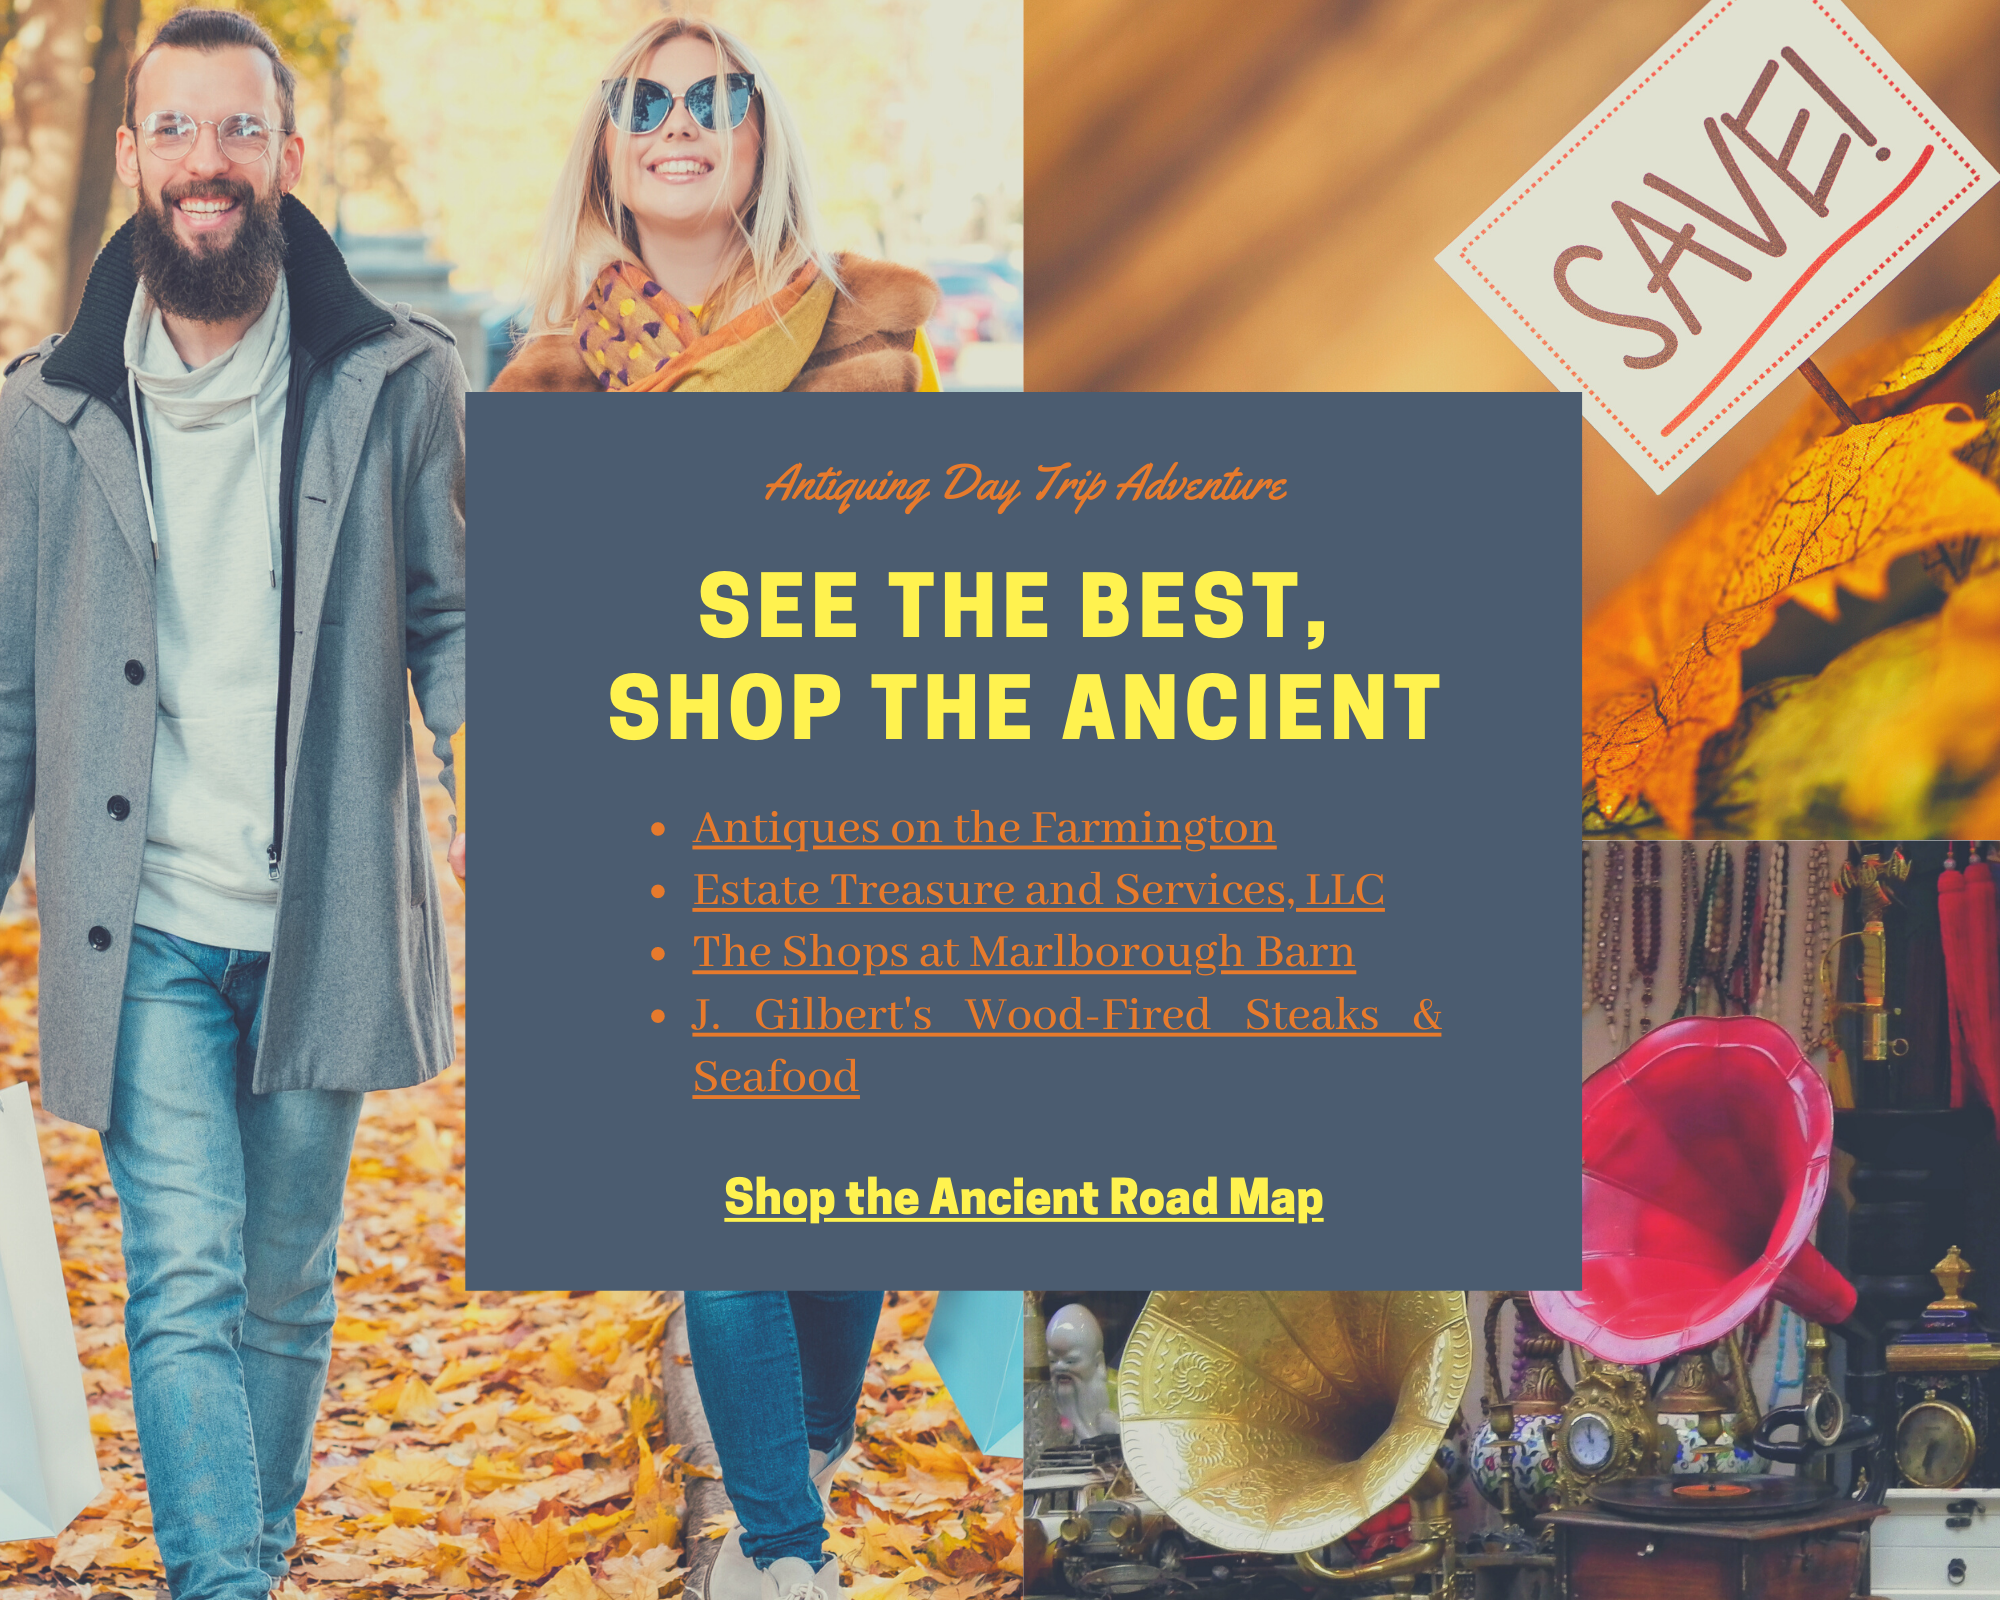 See the Best Shop the Ancient